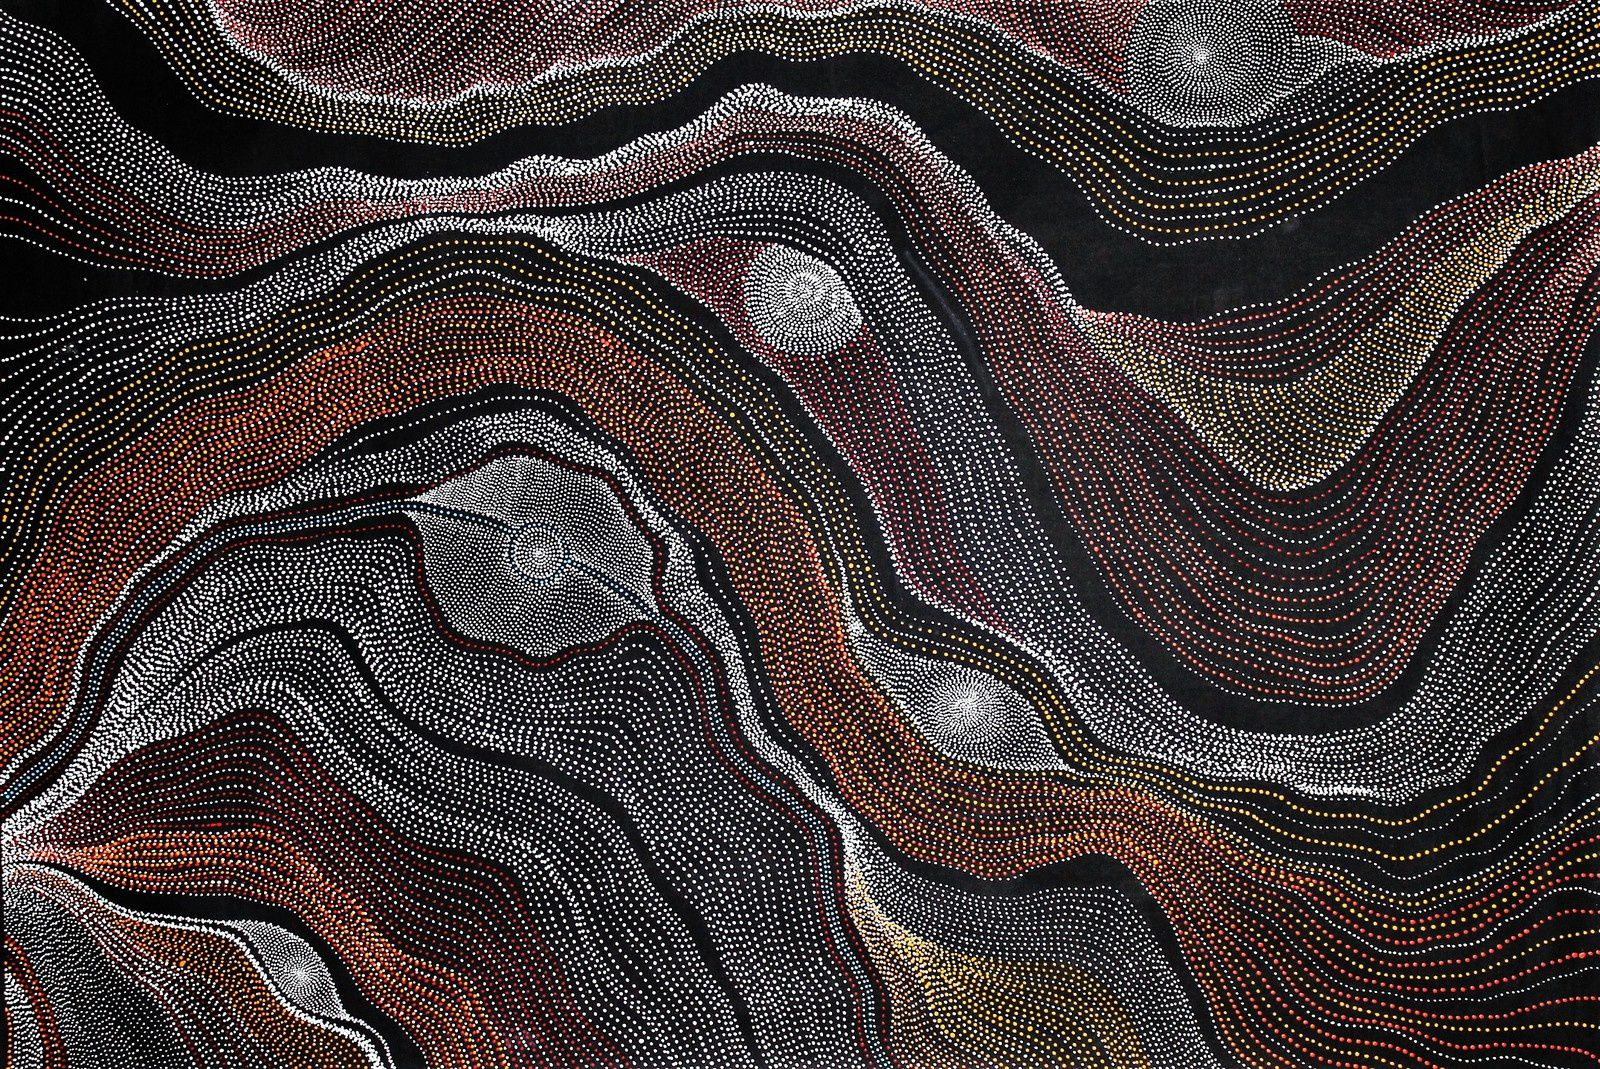 Anna Price Petyarre,  Ngurra (My country)140x93